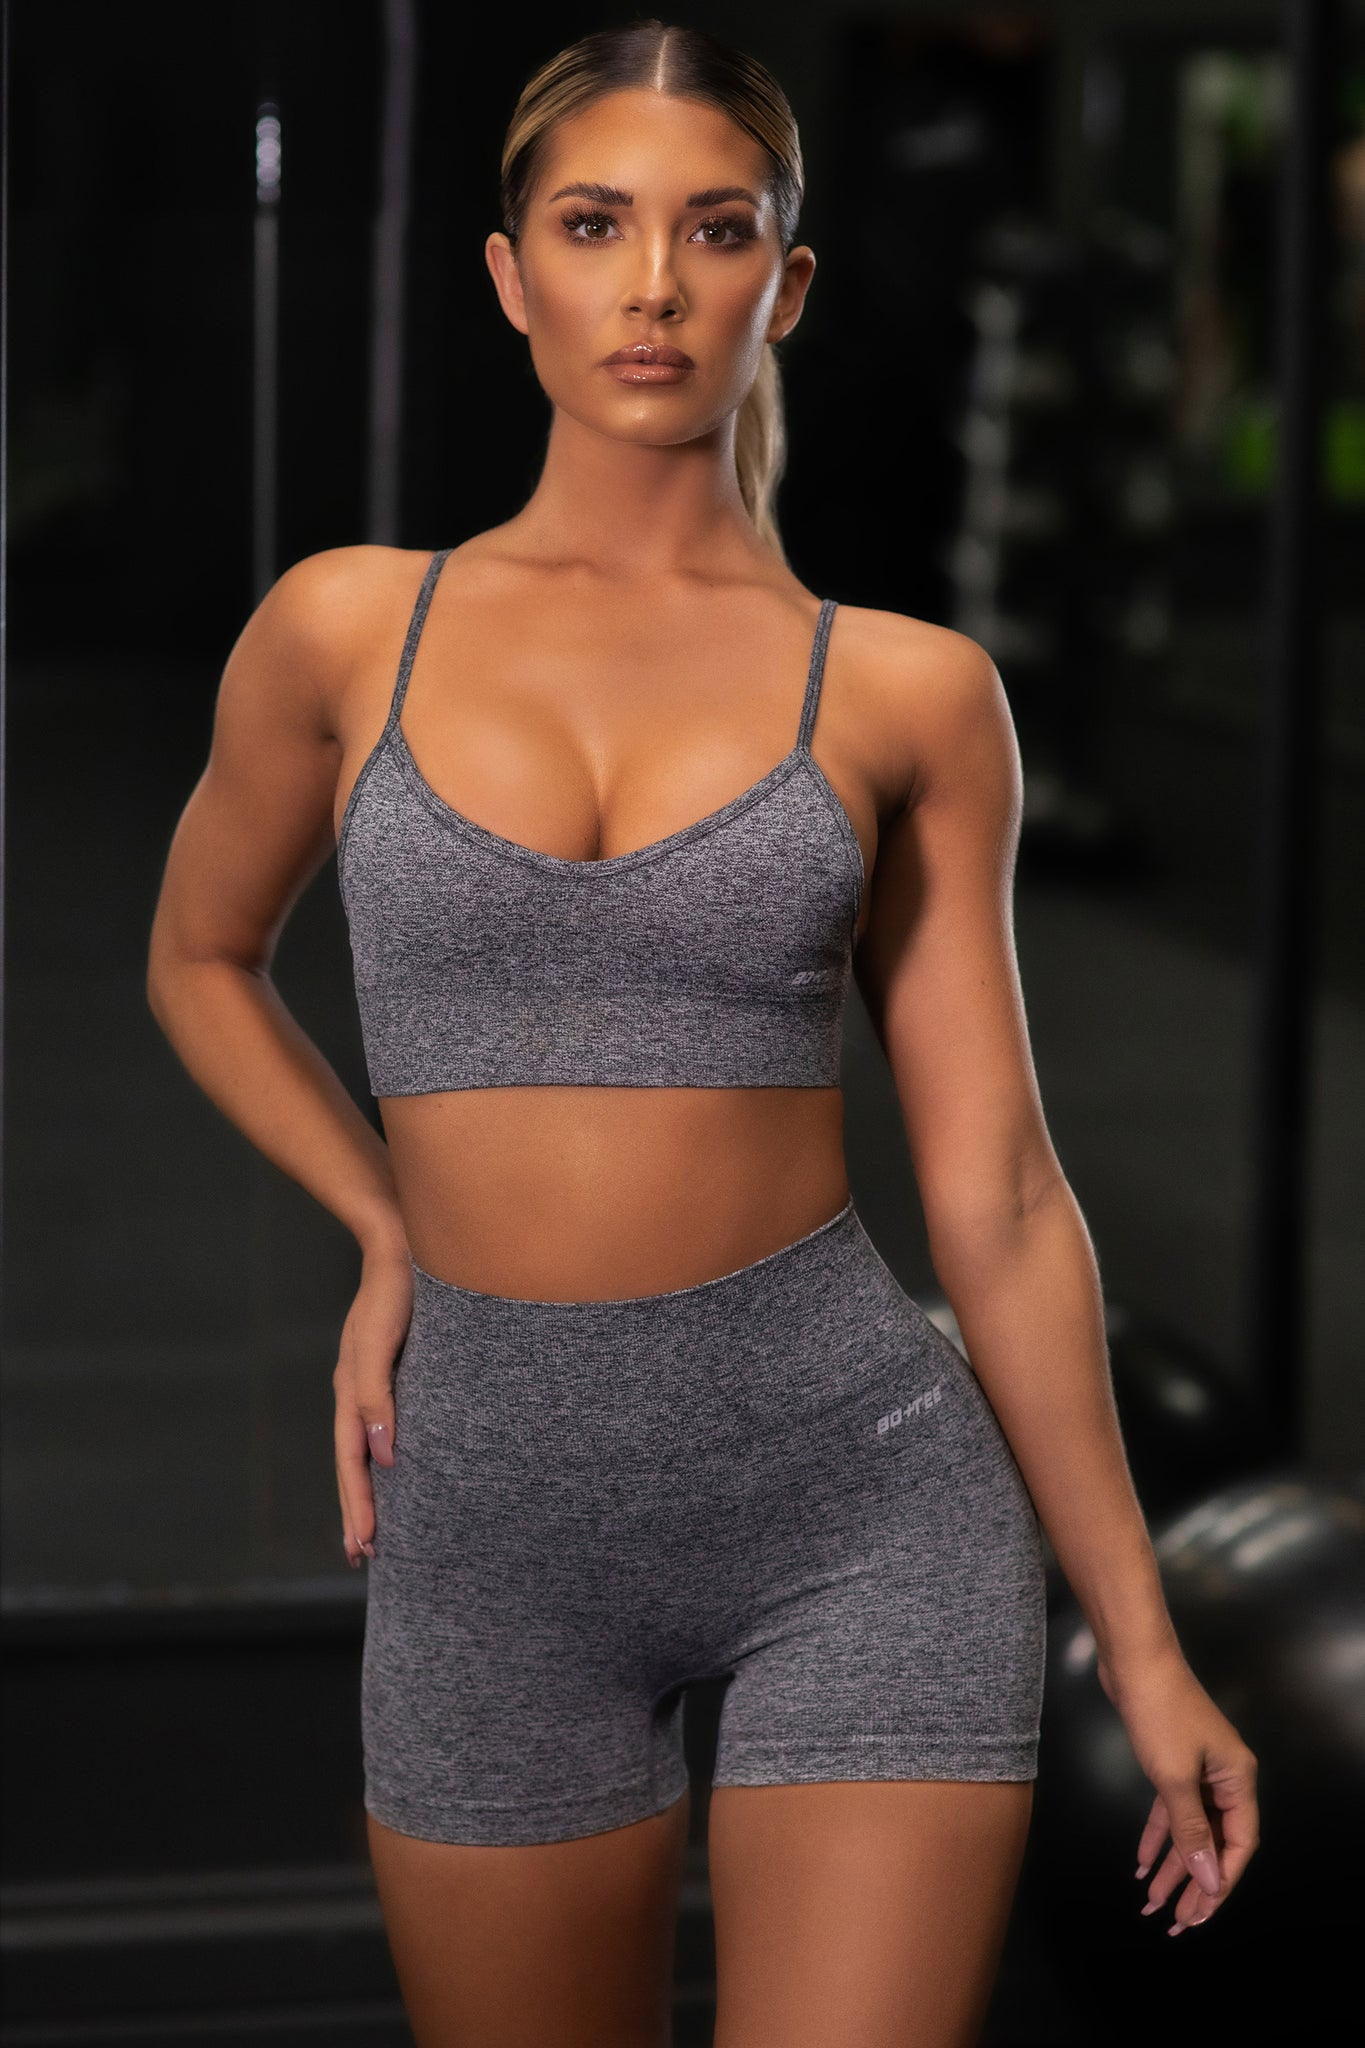 Plain black marl V neck sports bra with ribbed underband and thin adjustable straps. Image 5 of 6.